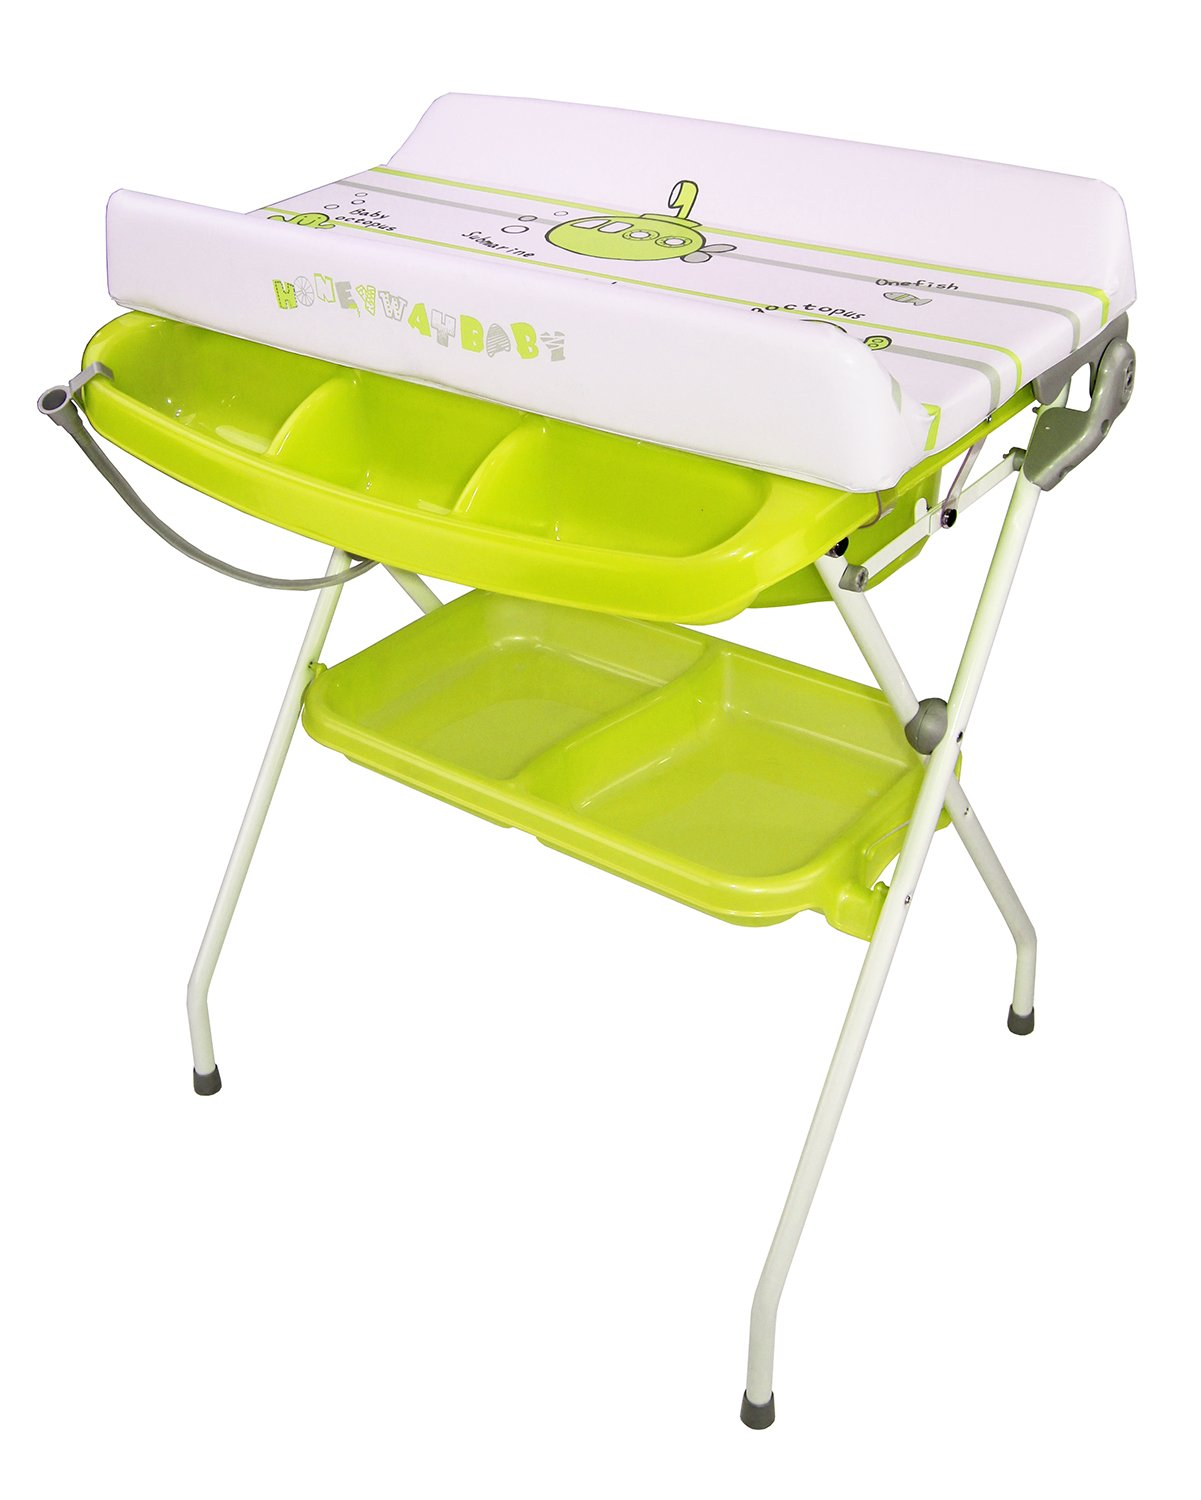 Amazon.com : Deluxe Baby Baby Bath U0026 Changing Table Combo Green Folding New  : Baby Bathing Seats And Tubs : Baby